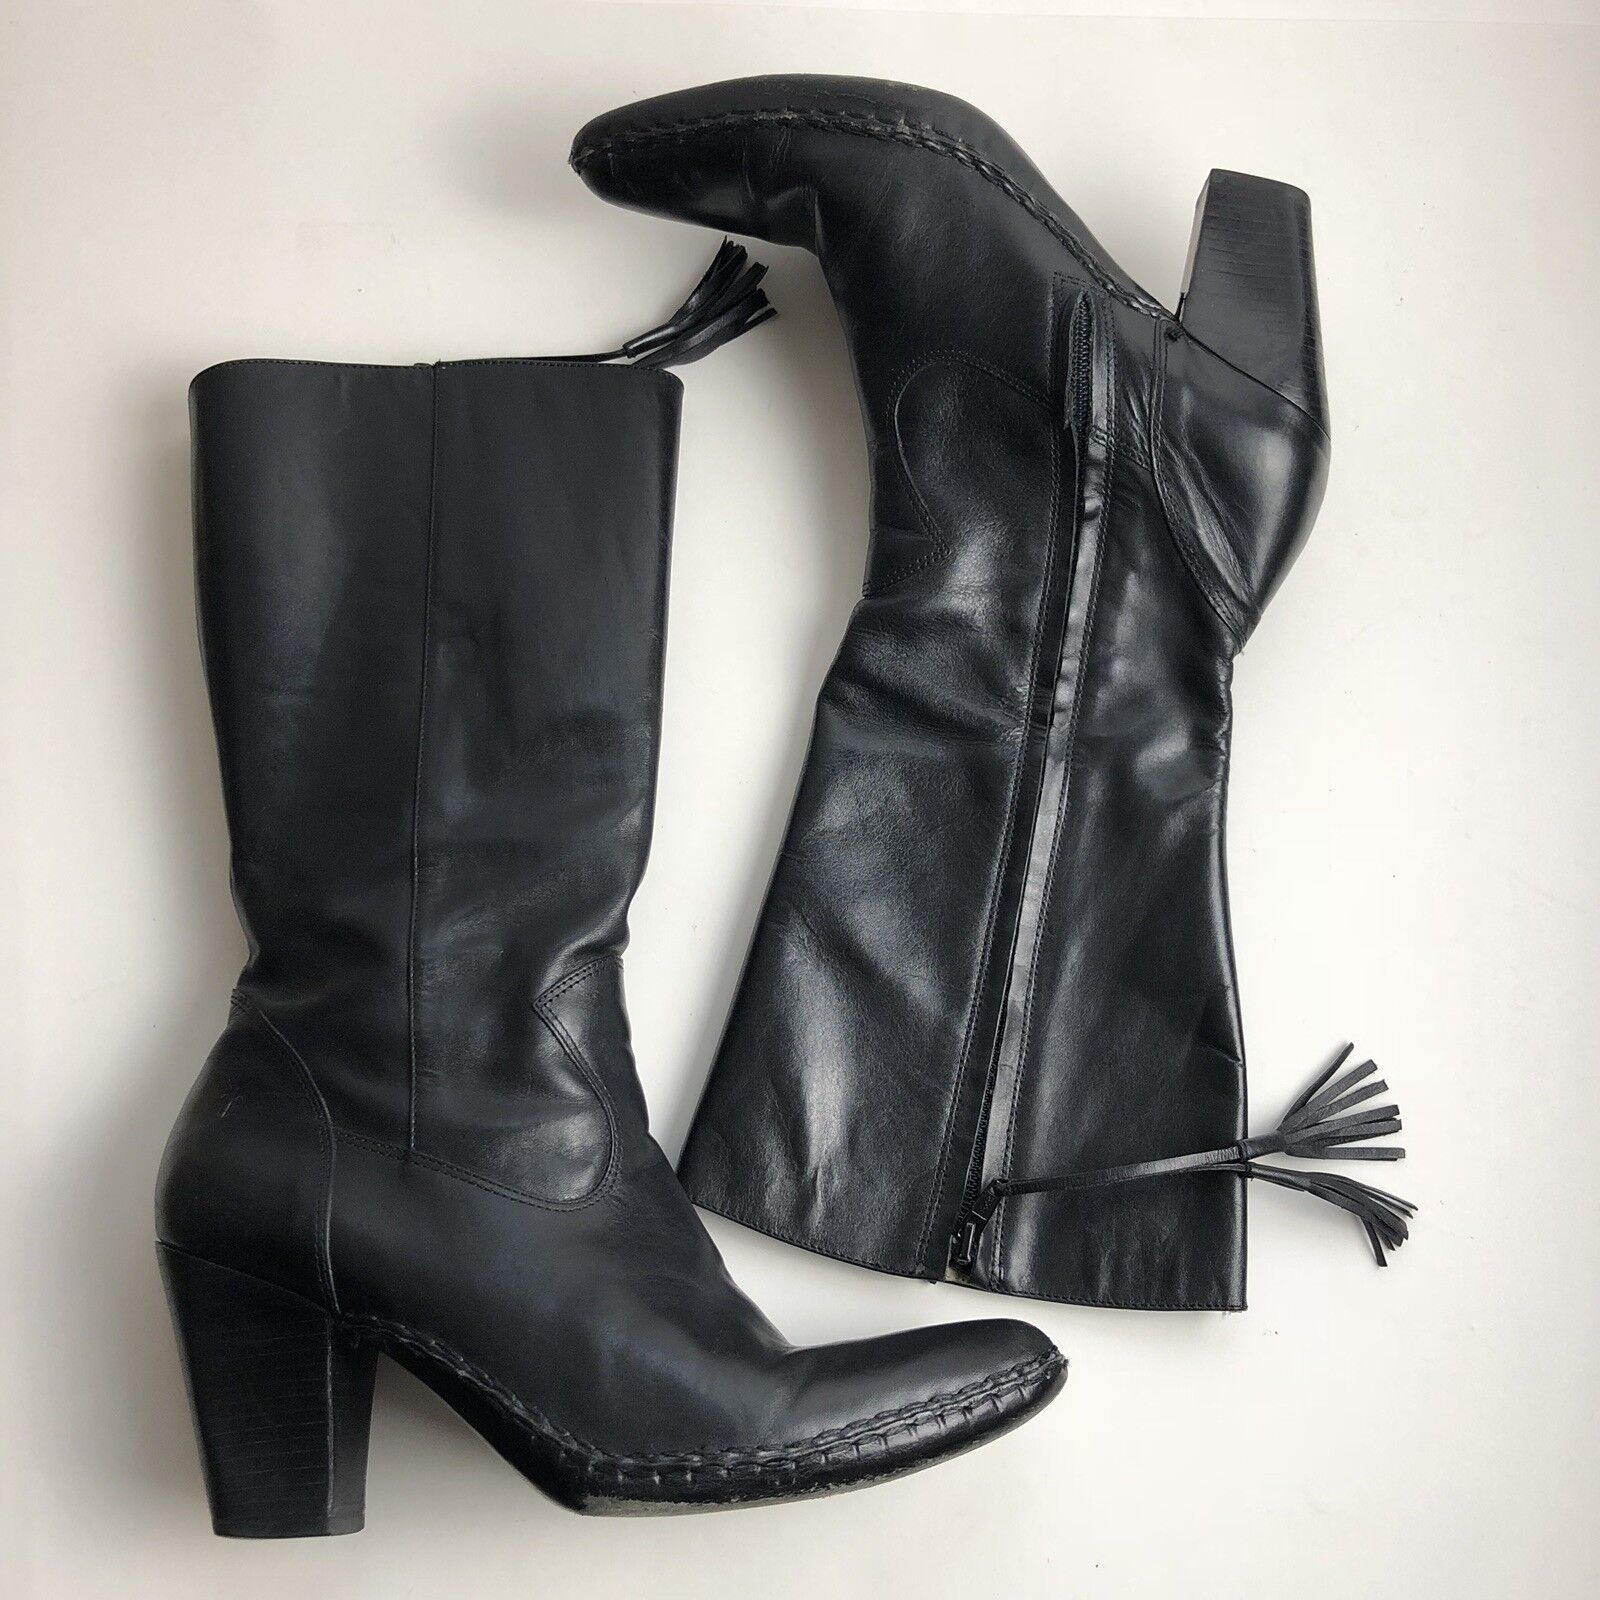 Frye Womens Boots Size 8.5 Black Leather Pointed Toe Zip Zip Zip Up Tassel Accent 786253